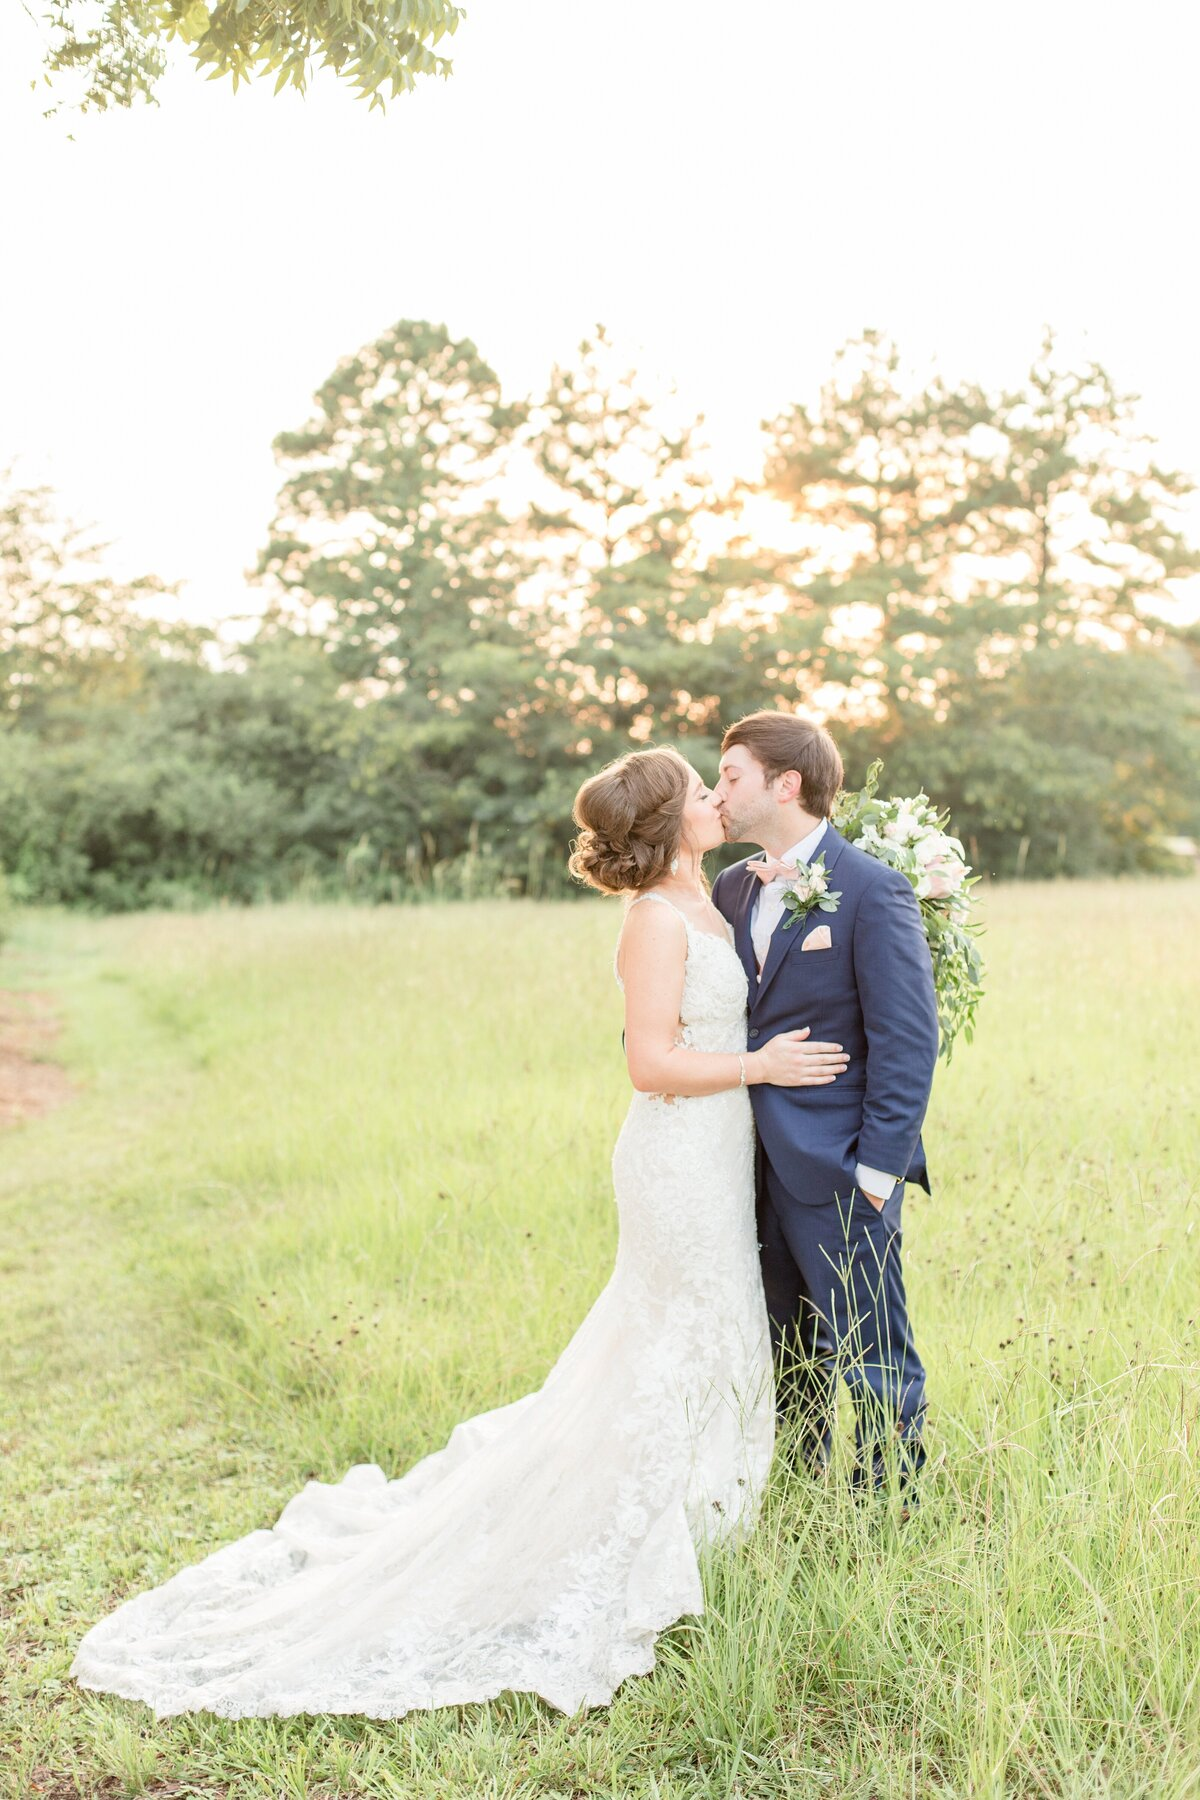 Wedding Gallery - A&J Birmingham, Alabama Wedding & Engagement Photographers - Katie & Alec Photography 81